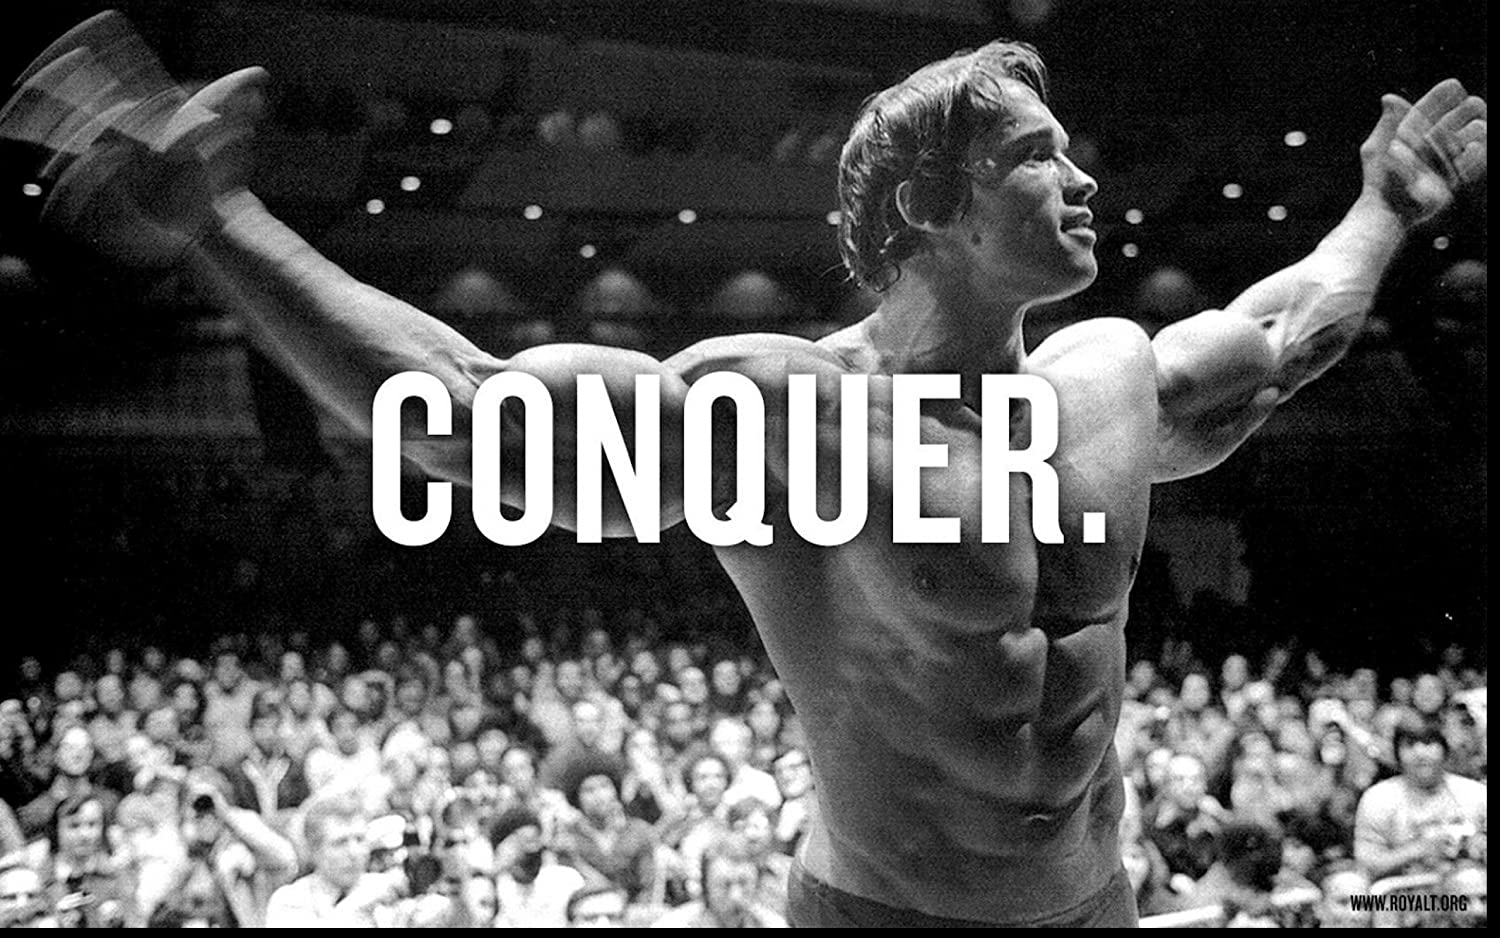 movie posters r' us Arnold Schwarzenegger Conquer - Body Building Wall Poster Print (36x24)